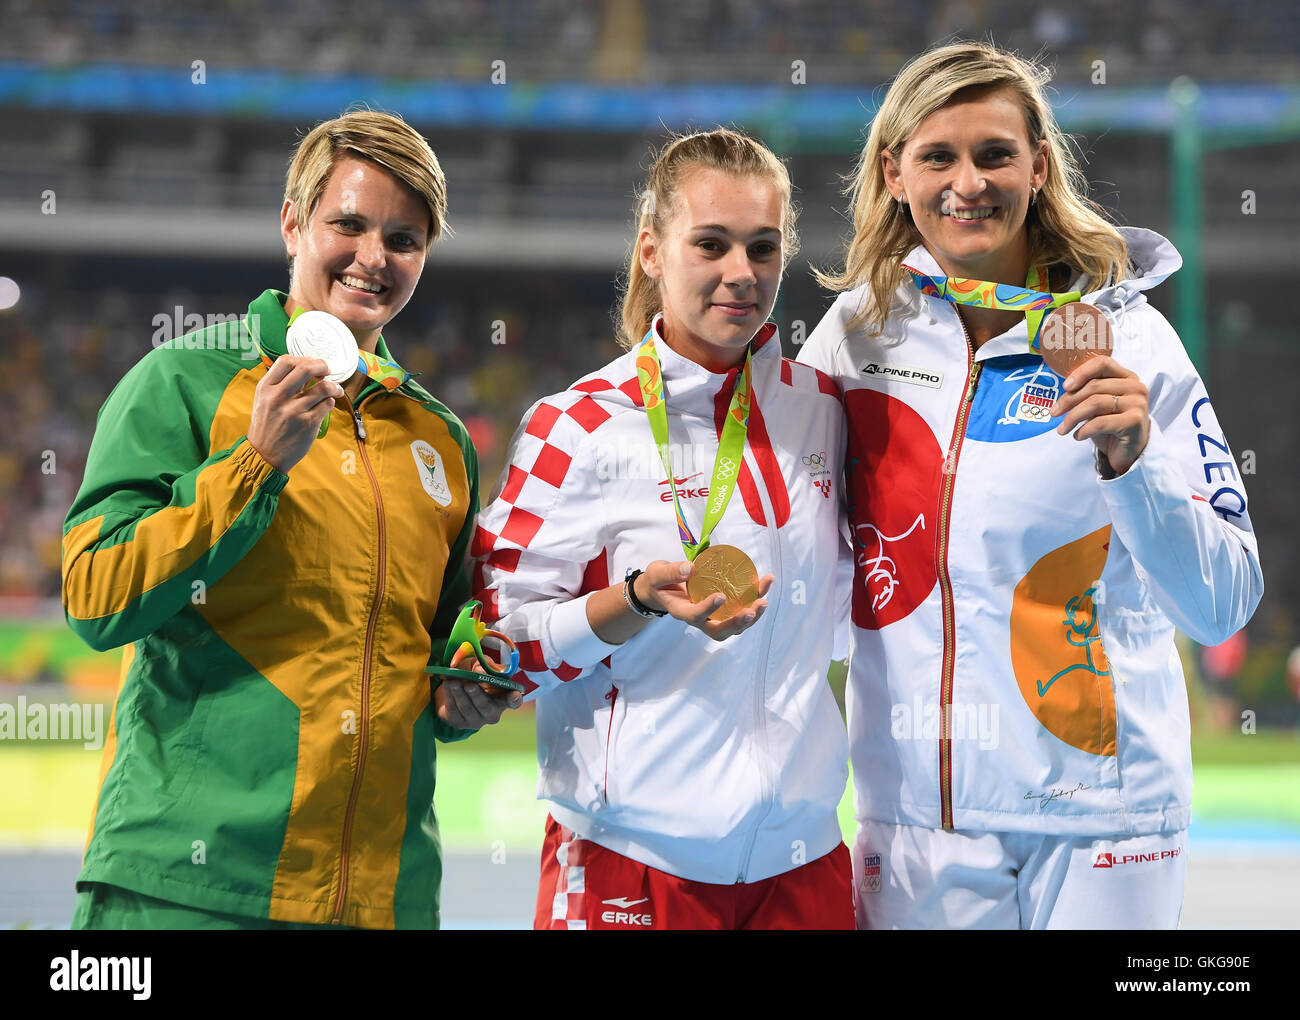 Rio de Janeiro, Brazil. 19th August, 2016. Sunette Viljoen of South Africa (silver), Sara Kolak of Croatia (gold) - Stock Image